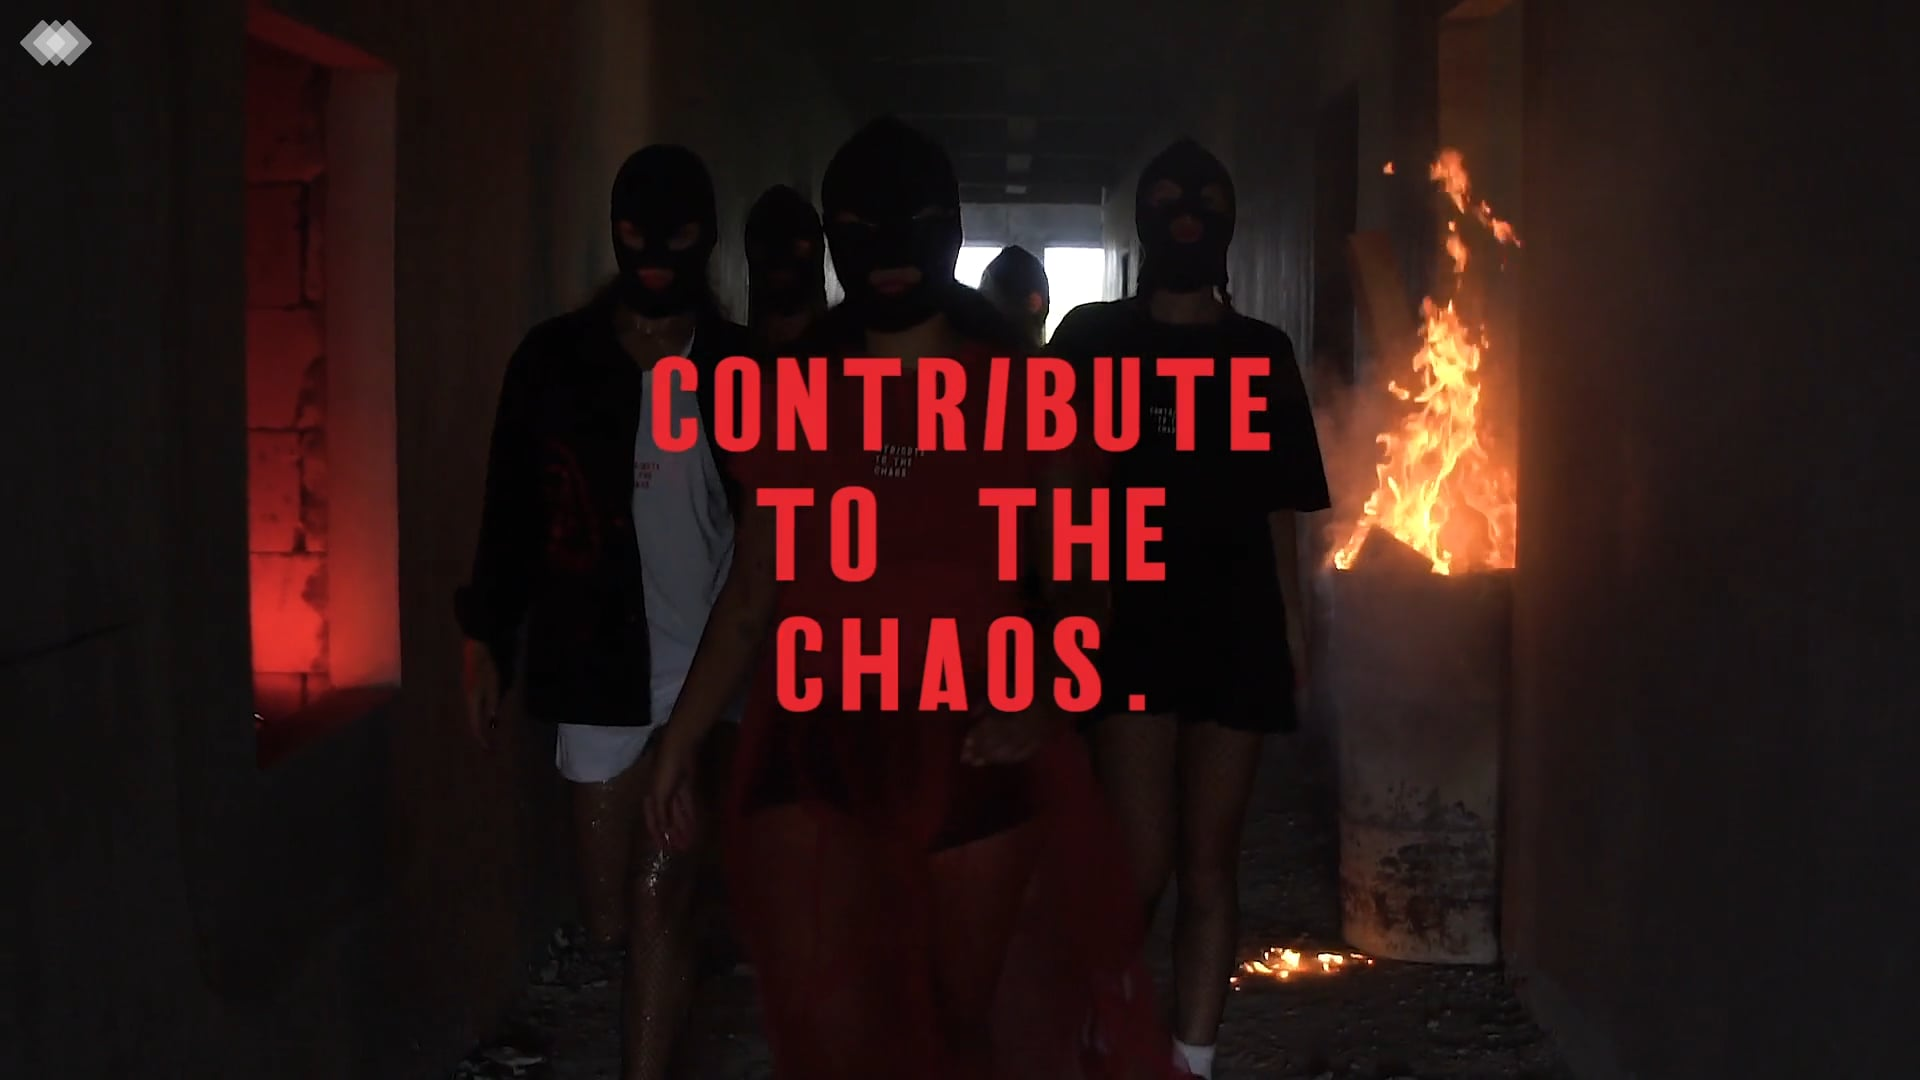 CONTRIBUTE TO THE CHAOS